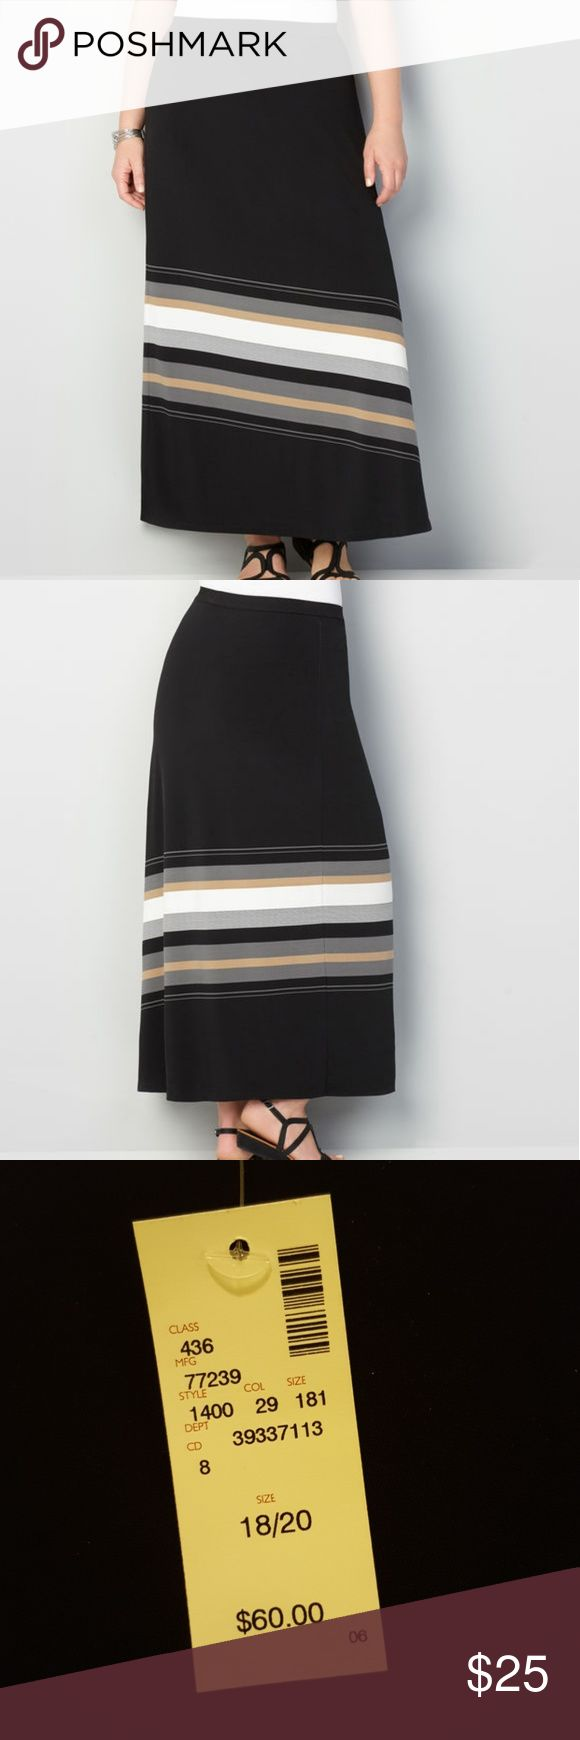 """NWT Diagonal Stripe Maxi Skirt Avenue VIP Knits Collection - easy care, easy wear pull-on plus size skirt. Beautiful neutral stripes at the hem for tone on tone look. 36"""" maxi length with side slit.Covered elastic waist.Polyester/spandex. Machine wash. Black with tan, gray, white stripes. Size 18/20 Avenue Skirts Maxi"""